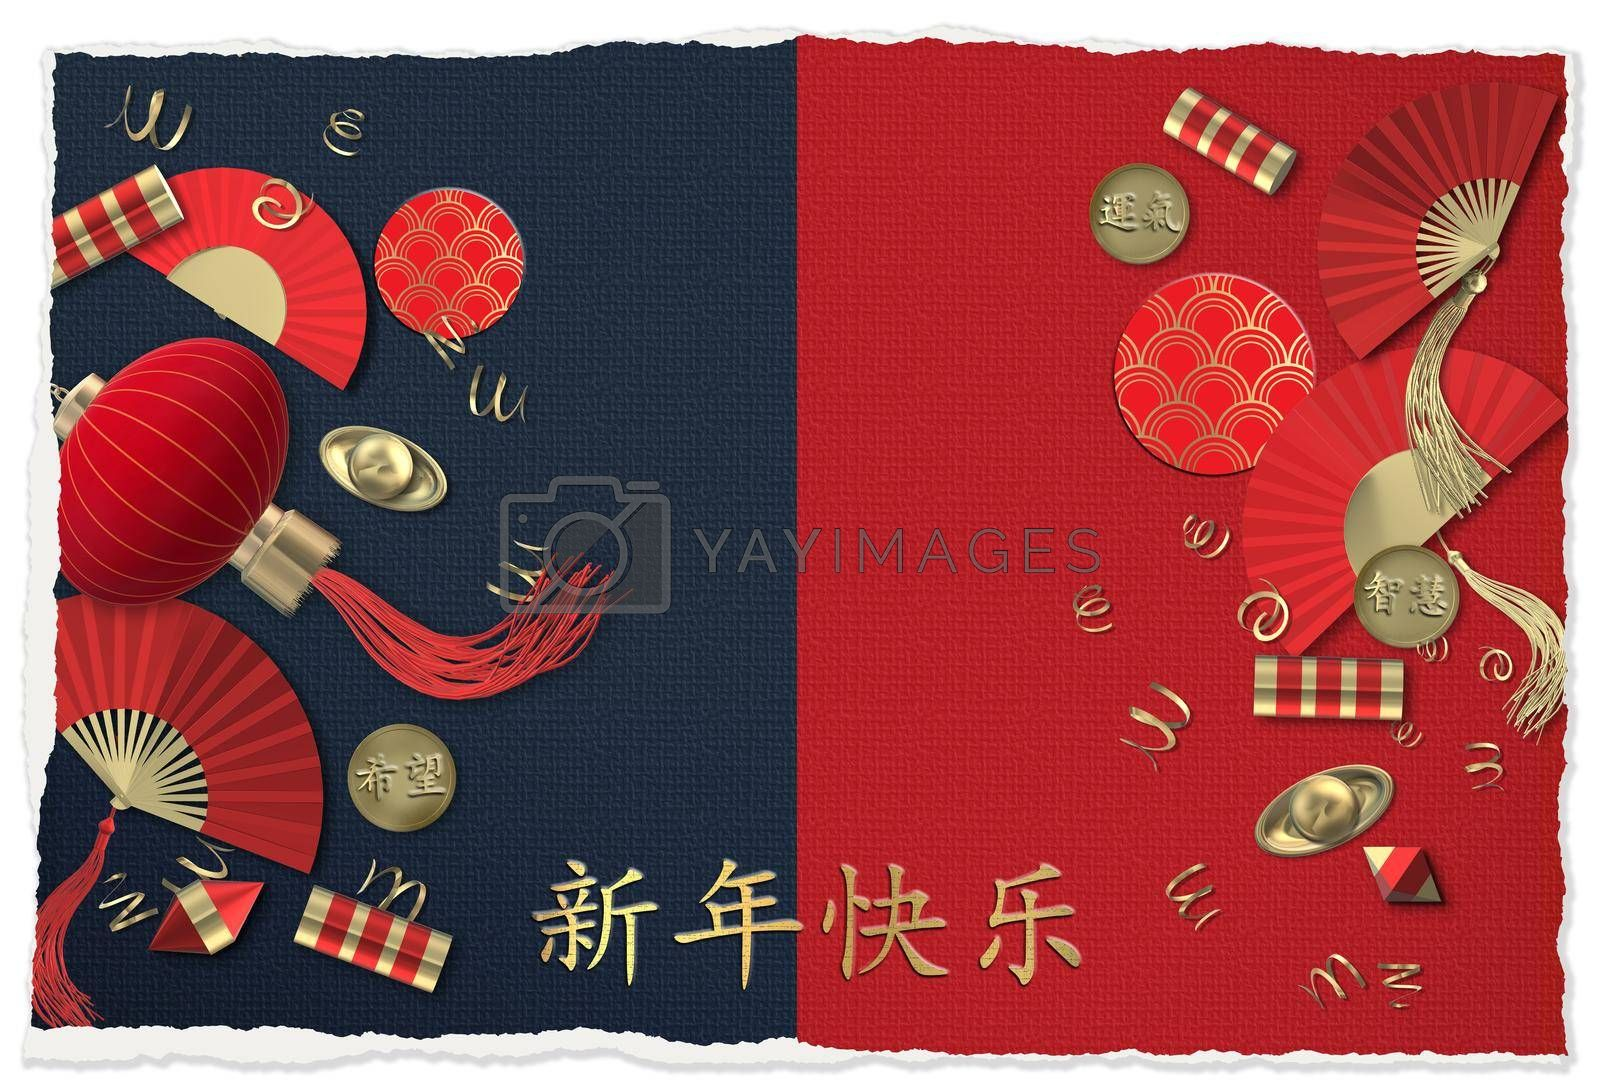 Chinese new year. Lantern, fans, crackers. Oriental Asian symbols on red blue. Lucky envelopes coins with text Chinese translation Luck, Hope, Wisdom. Gold Chinese text Happy New Year. 3D render